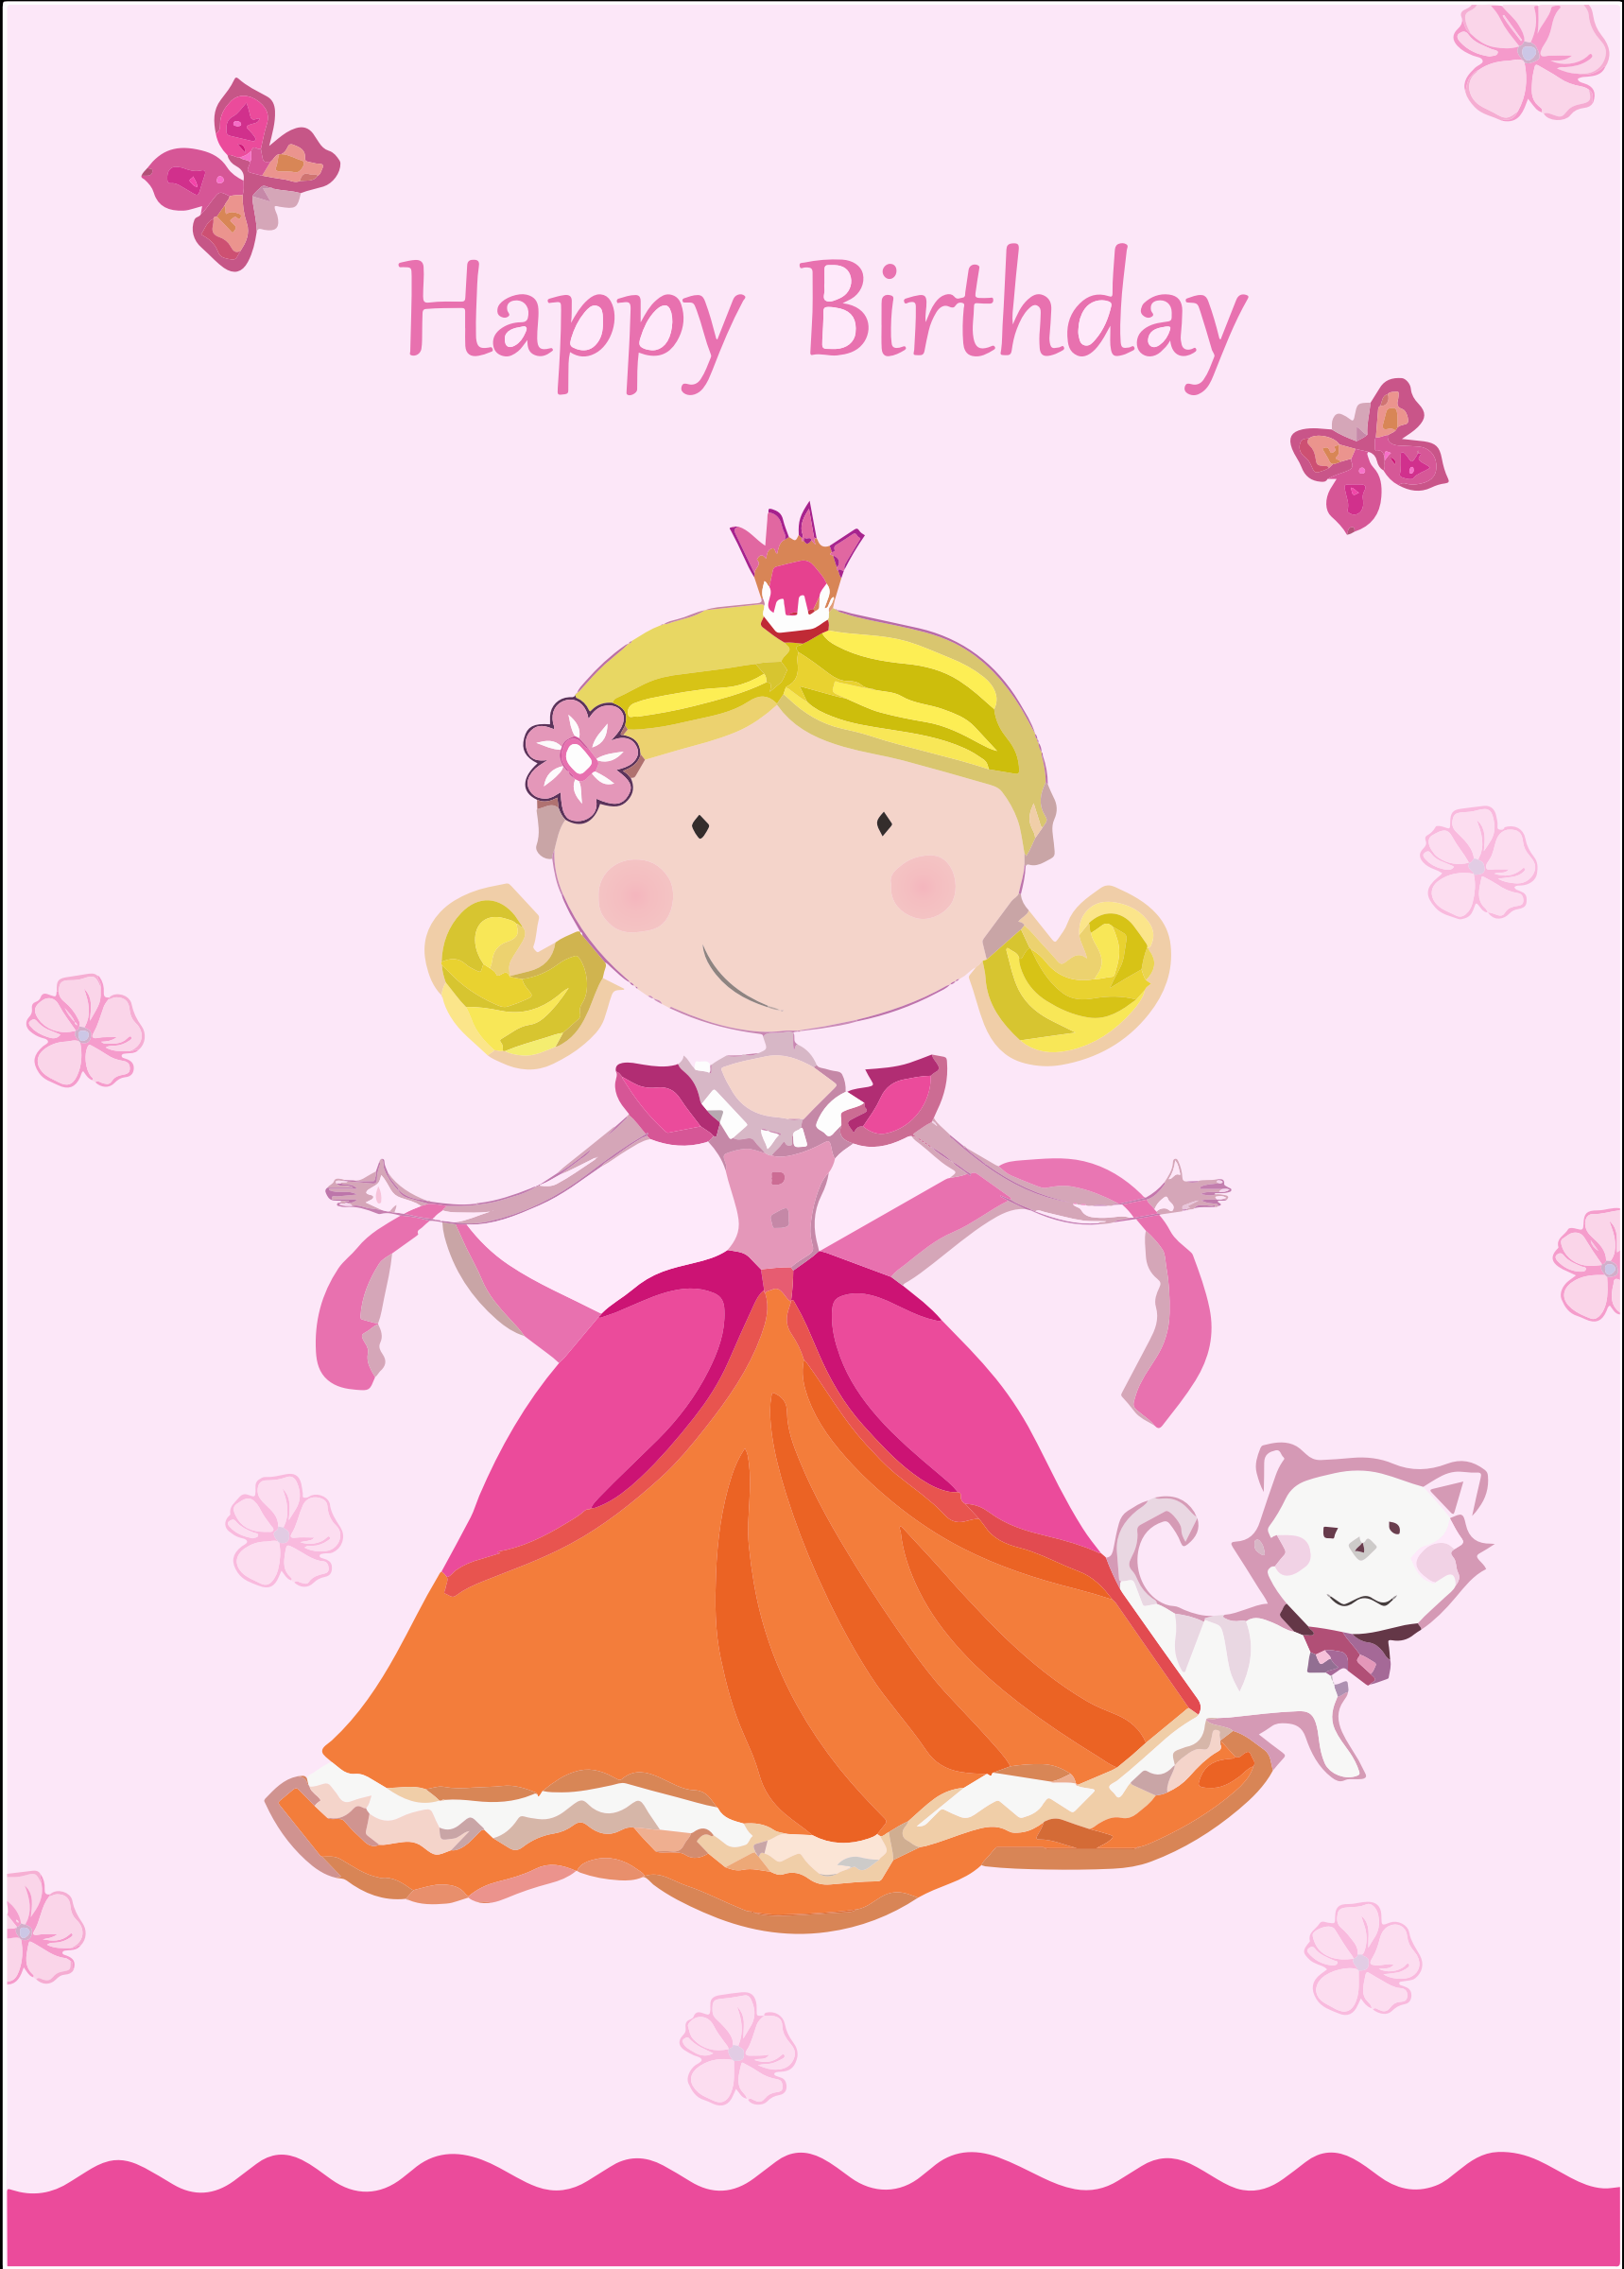 Birthday card big image. Cards clipart animated